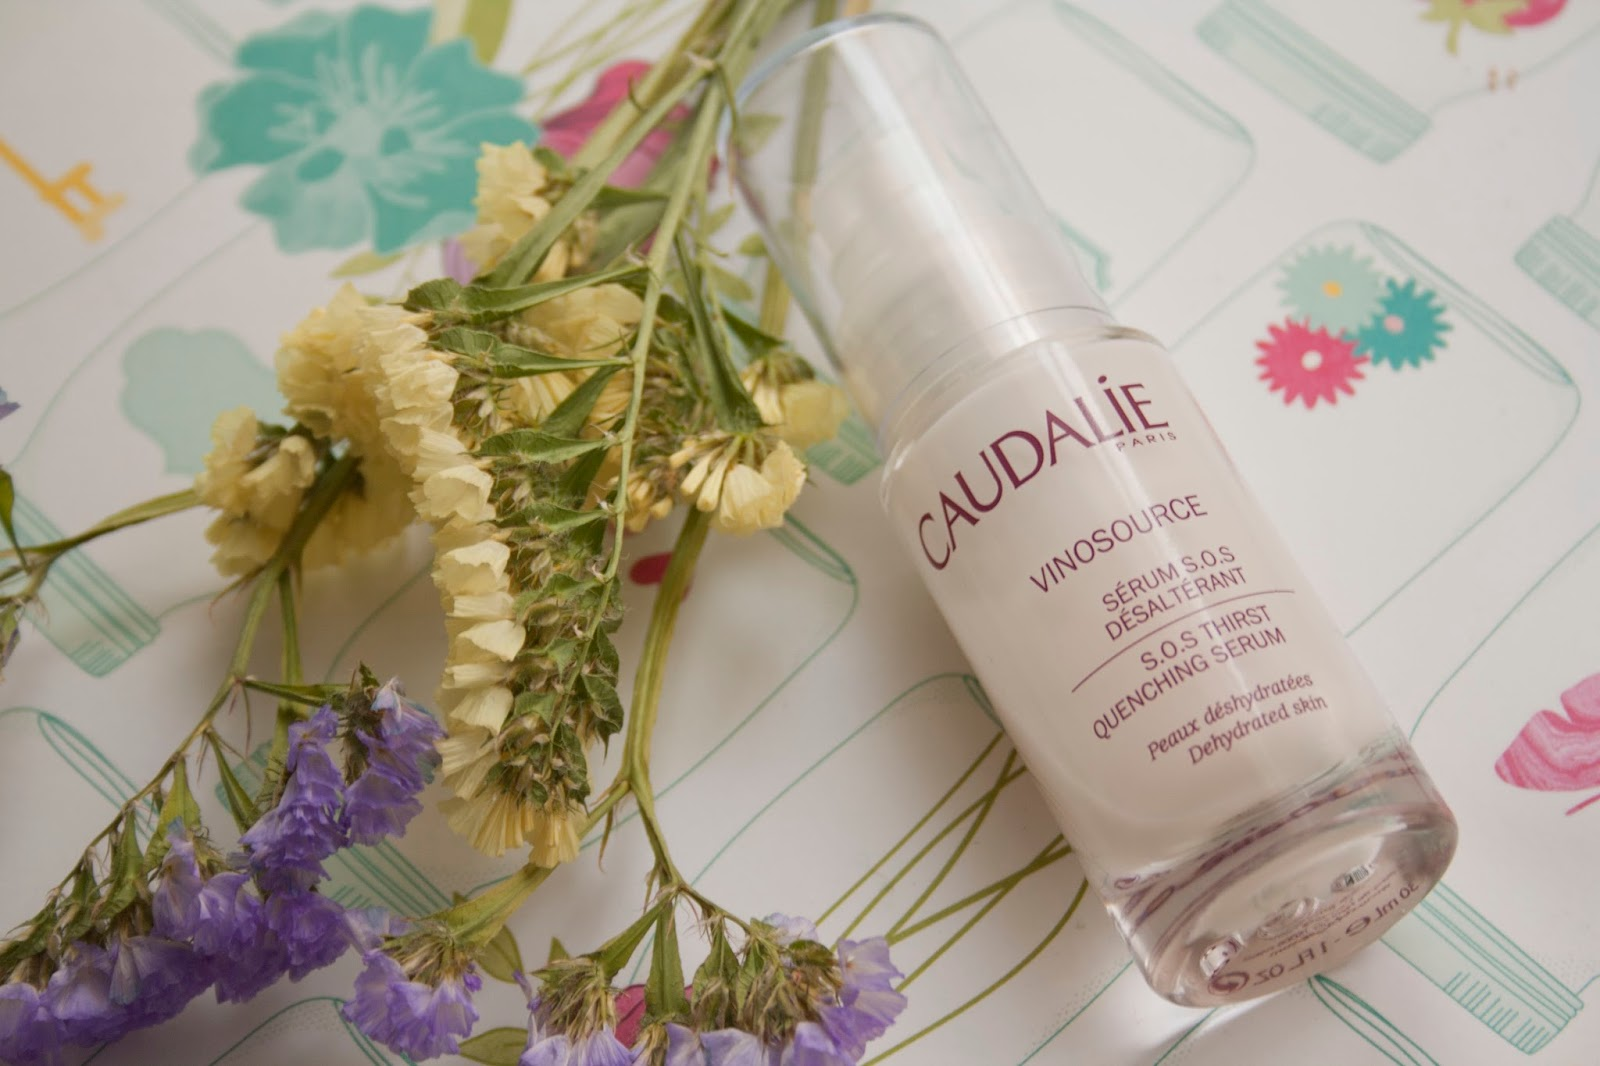 Caudalie Vinosource SOS Serum.